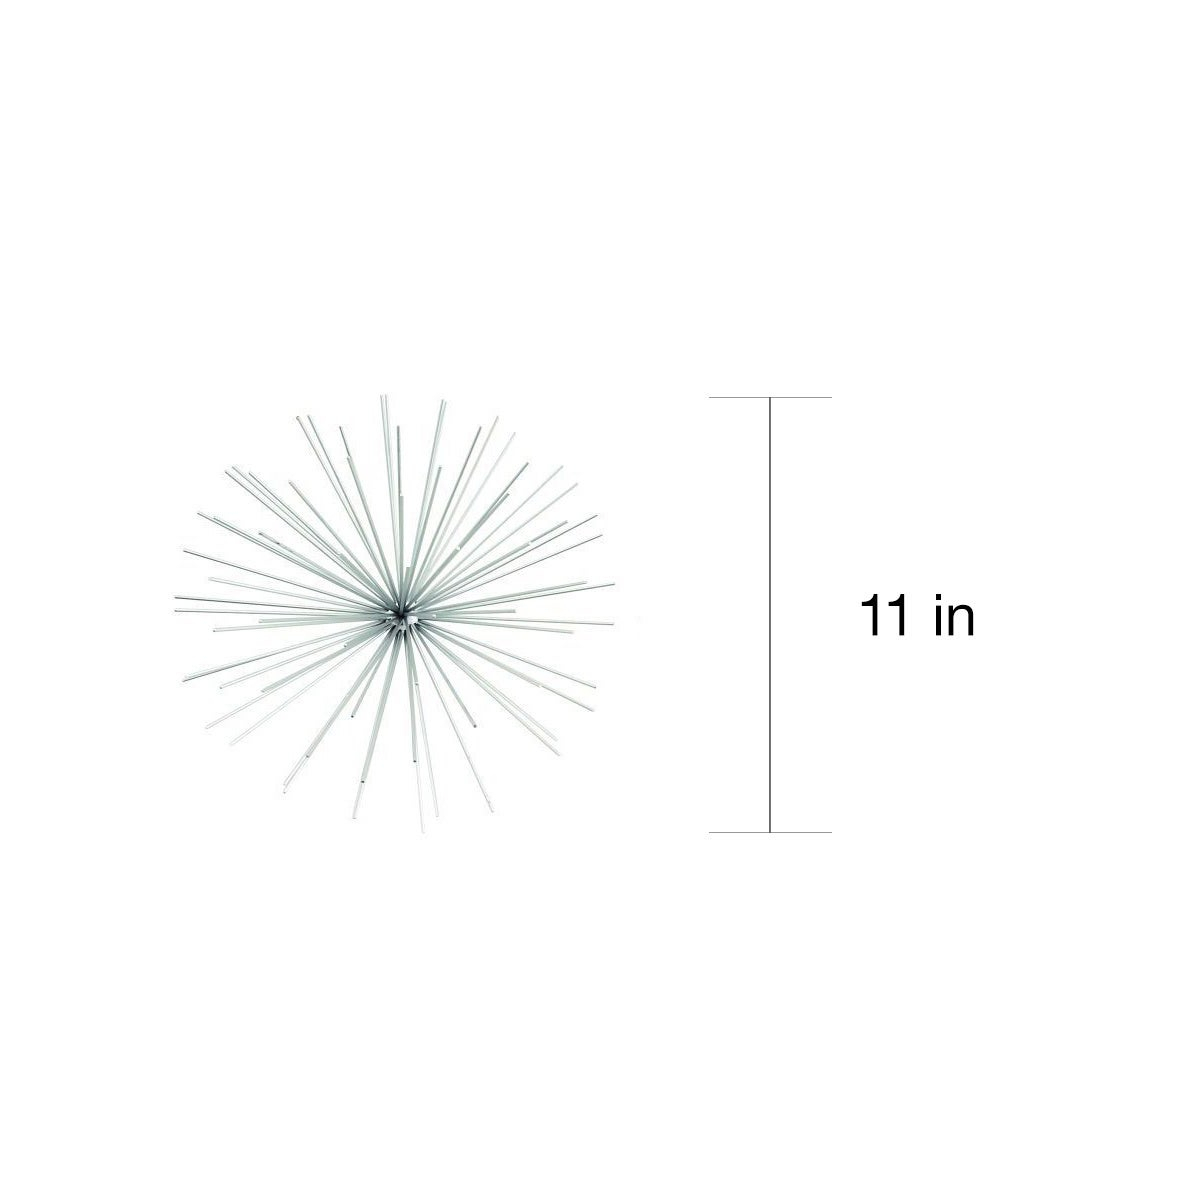 "Contemporary Style 3D Round Silver Metal Starburst Wall Decor Sculptures  Set Of 3 - 6"", 9"", 11"" in Set of 3 Contemporary 6, 9, and 11 Inch Gold Tin Starburst Sculptures (Image 9 of 30)"